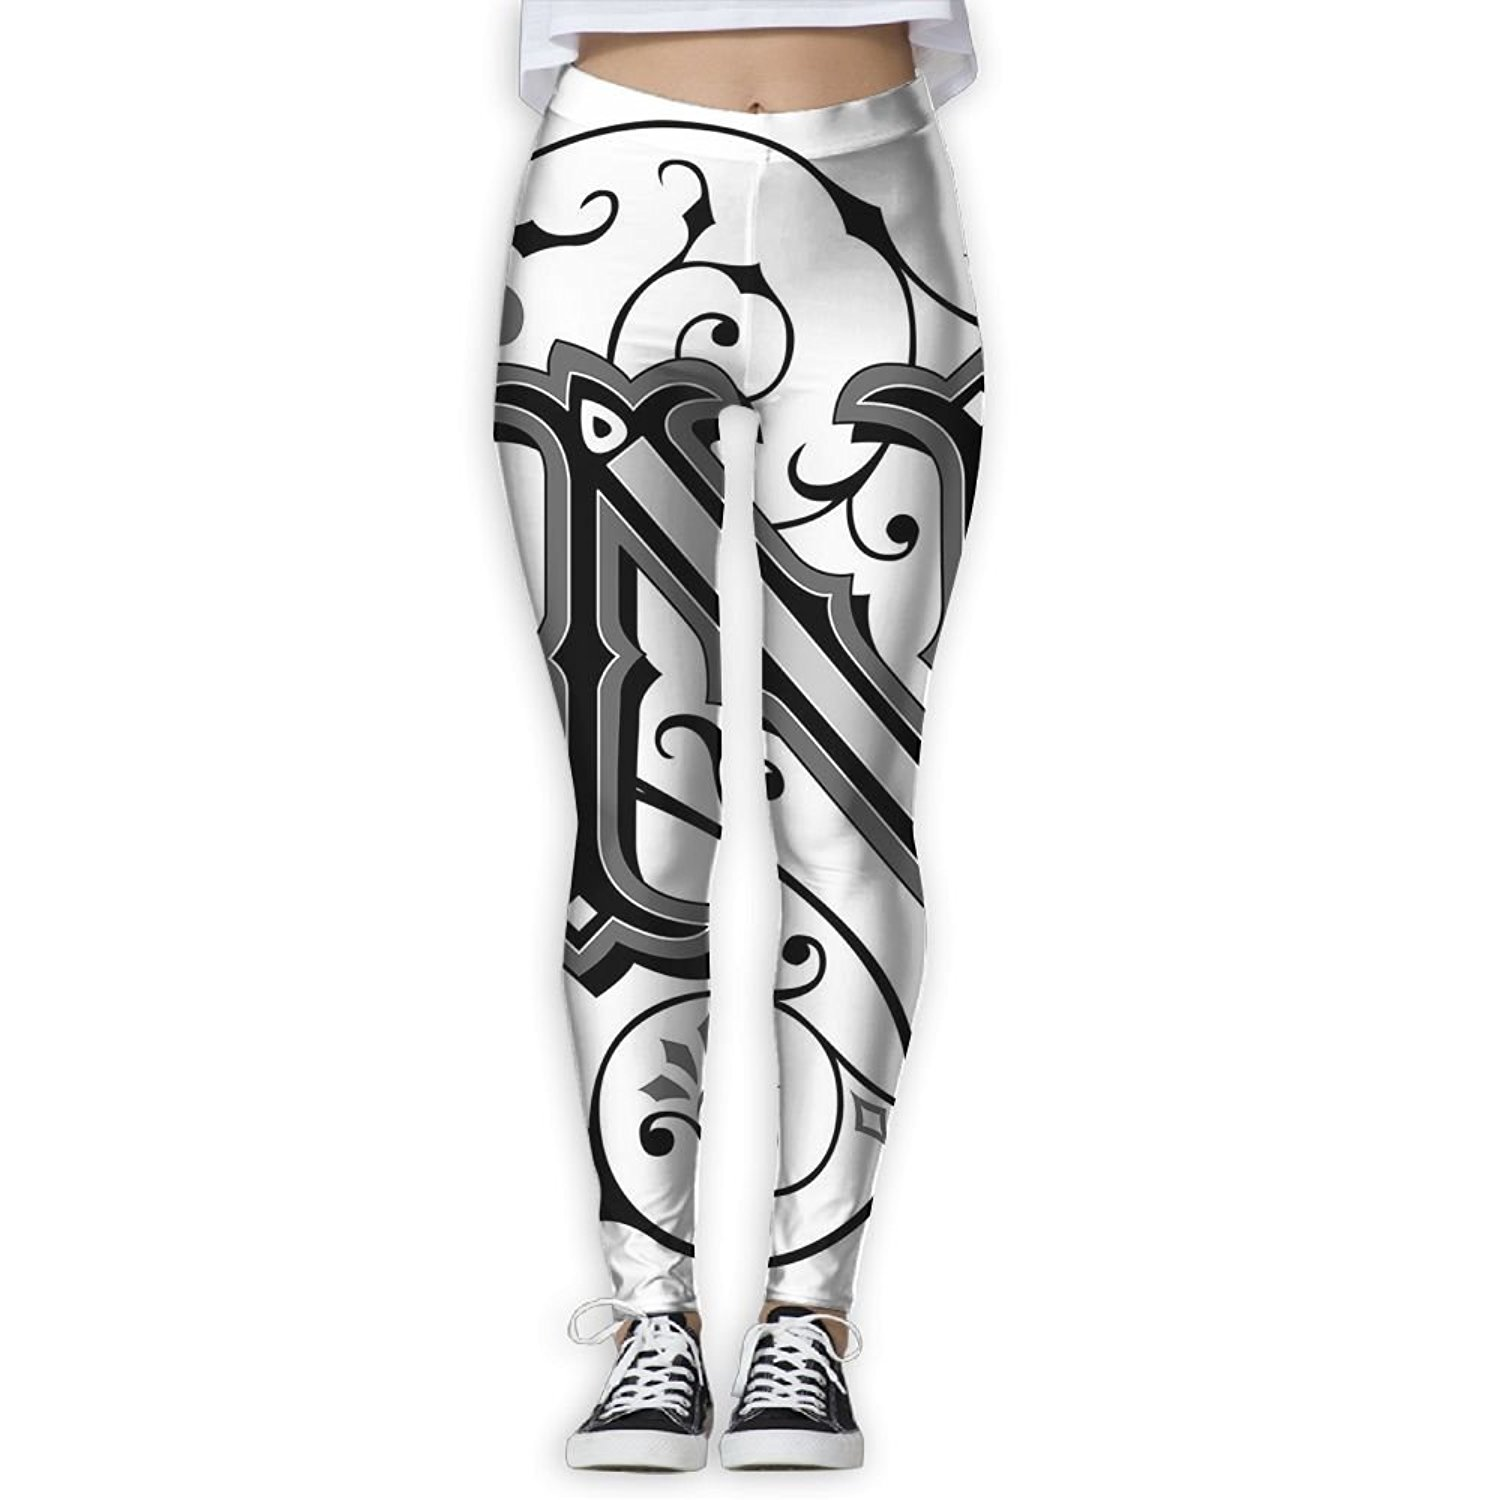 35fc5f76a08bd Get Quotations · Too Suffering Yoga Pants Middle Ages Inspired Capital N  Abstract Elements - High Waisted Workout Leggings